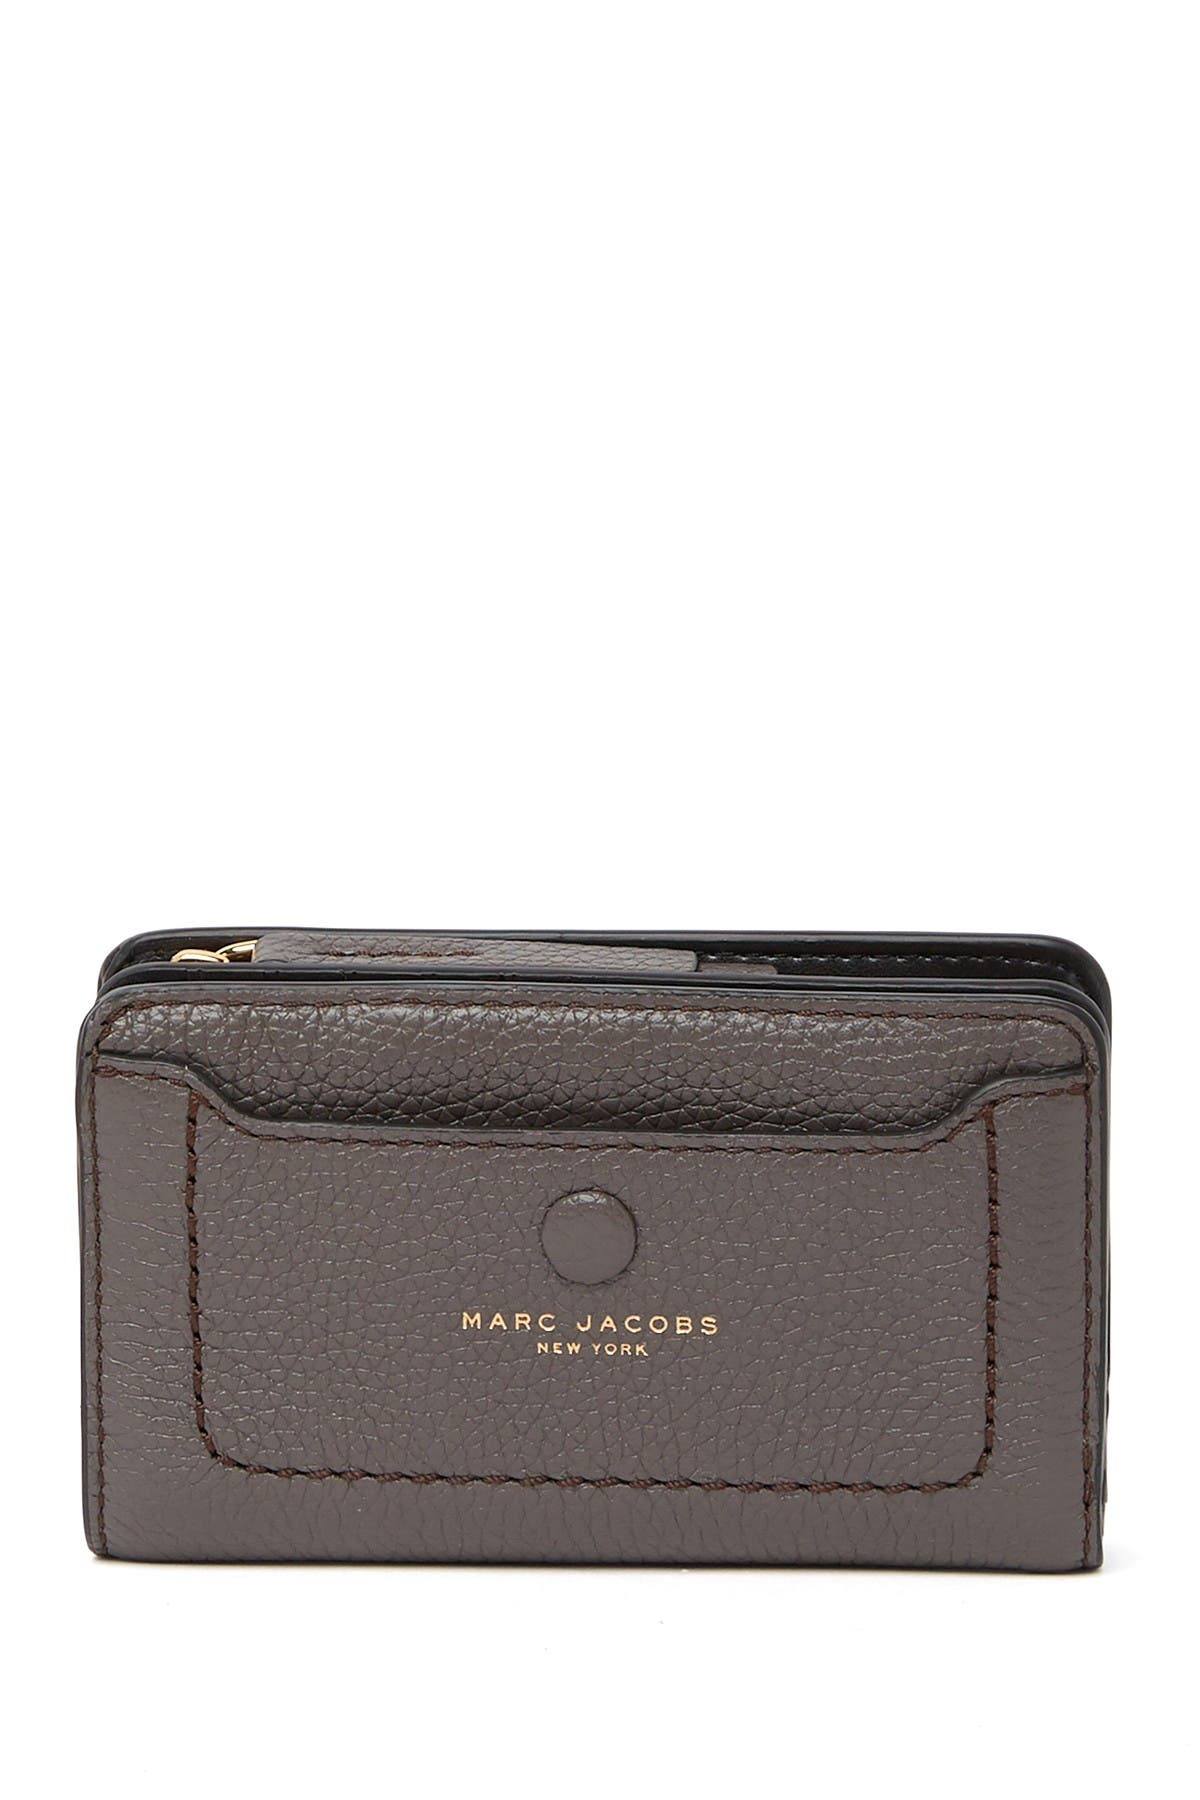 Image of Marc Jacobs Empire City Compact Leather Wallet